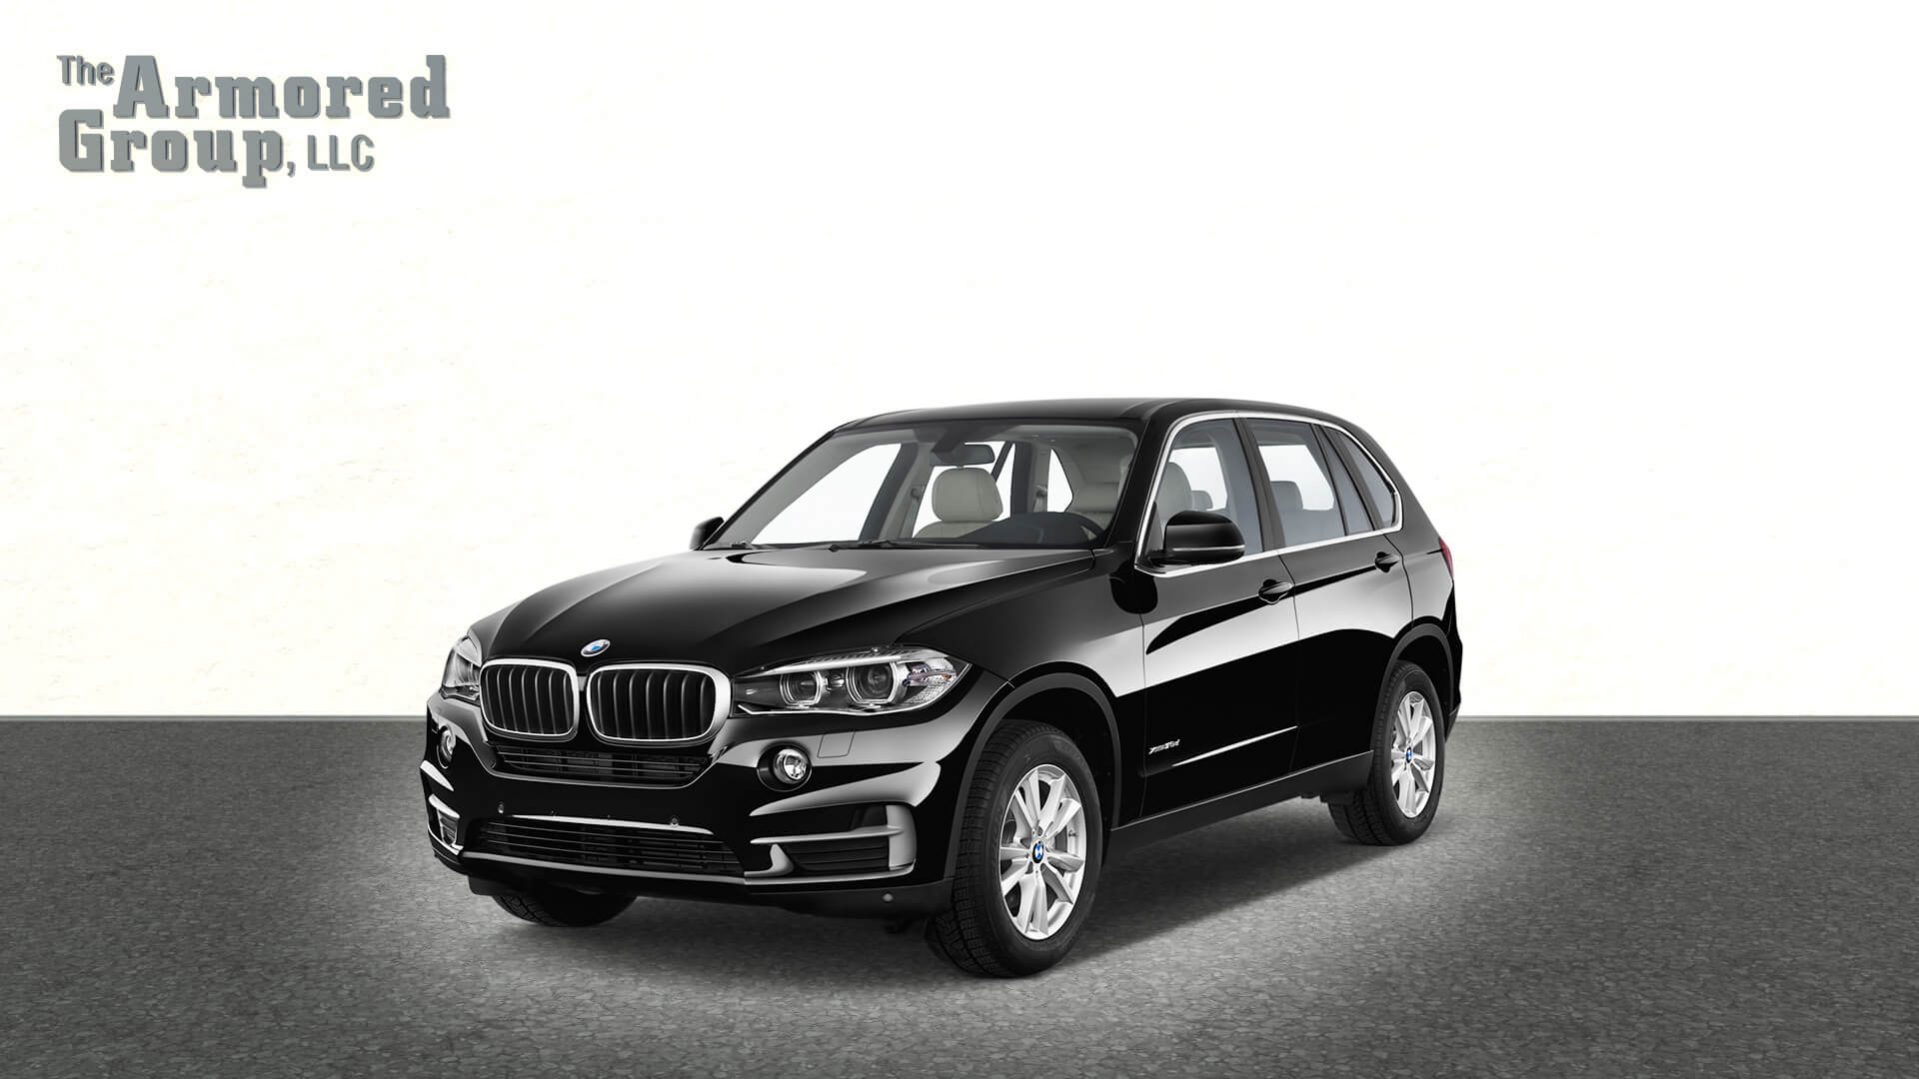 There's a huge range of white x5 cars available in our classified ads from approved dealers across. Armored Bmw X5 Bulletproof Suv The Armored Group